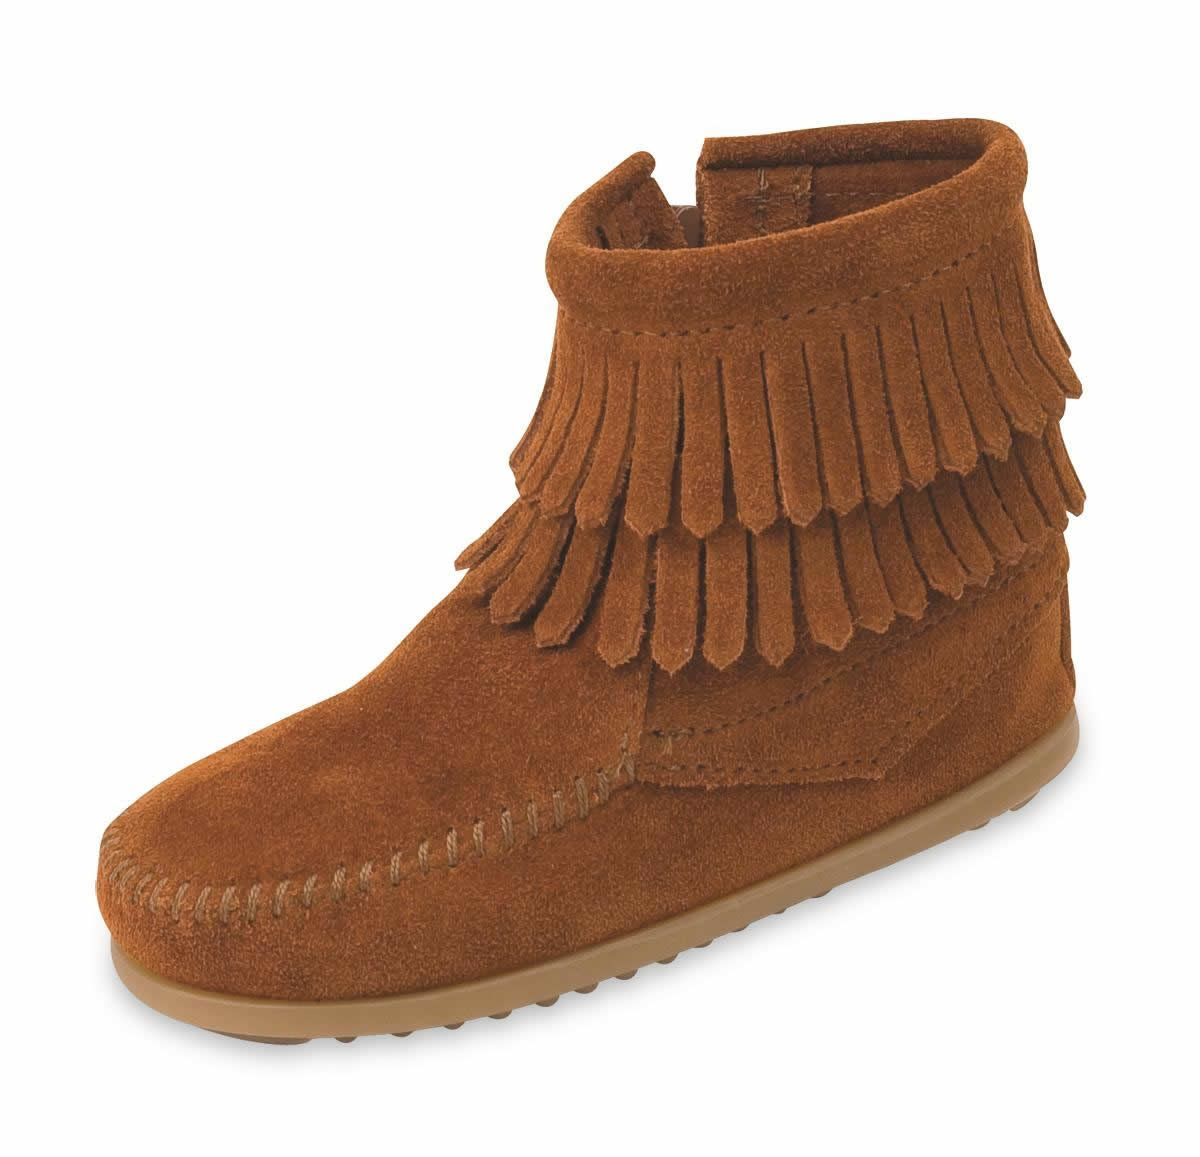 Kids BROWN double fringe zip moc